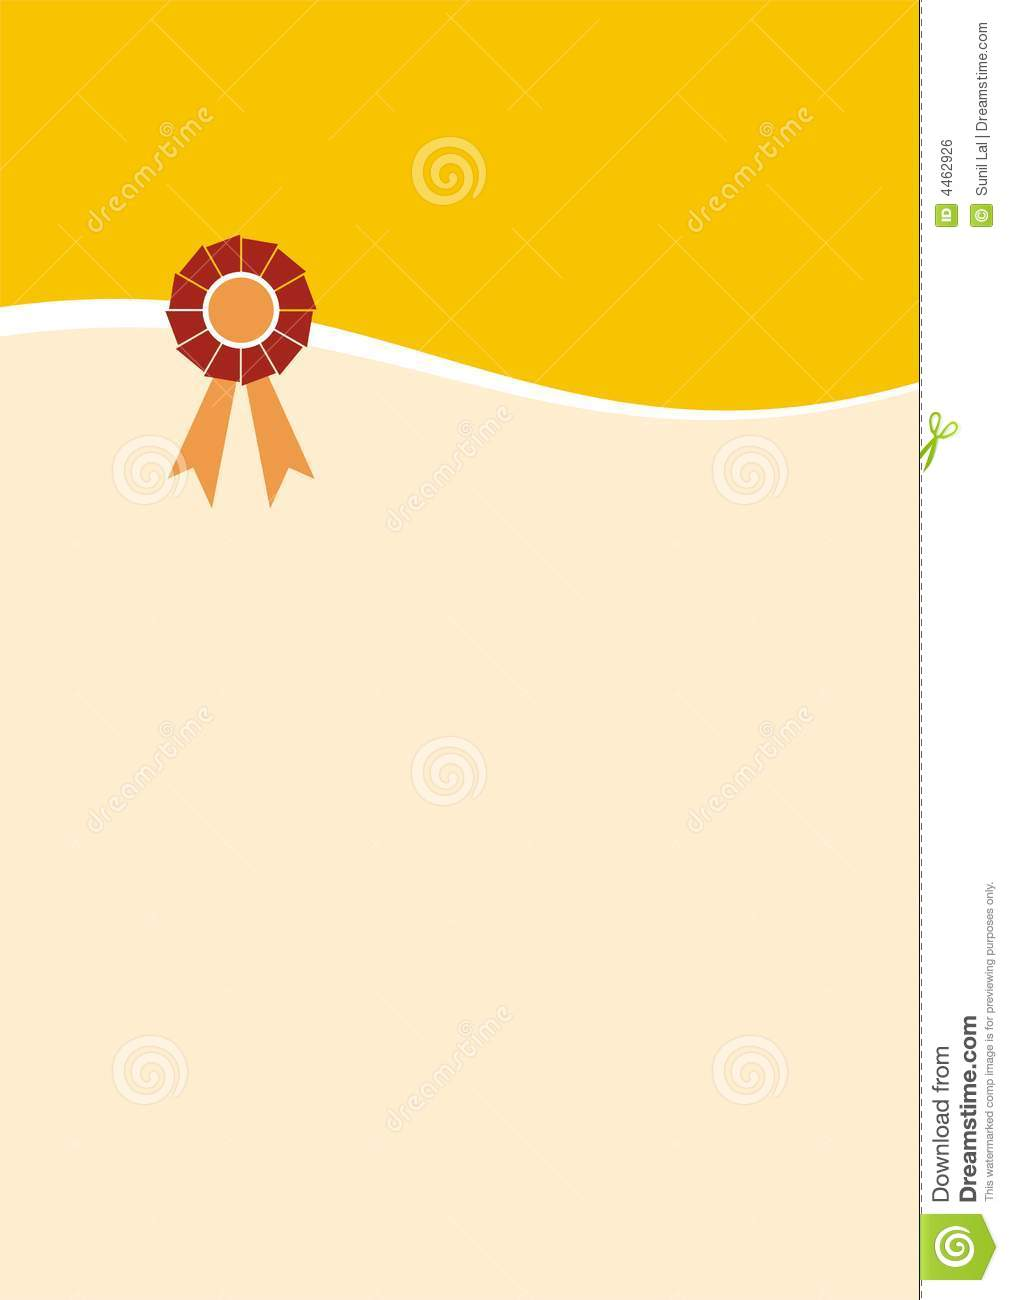 Certificate Design A3 Royalty Free Stock Image - Image: 4462926